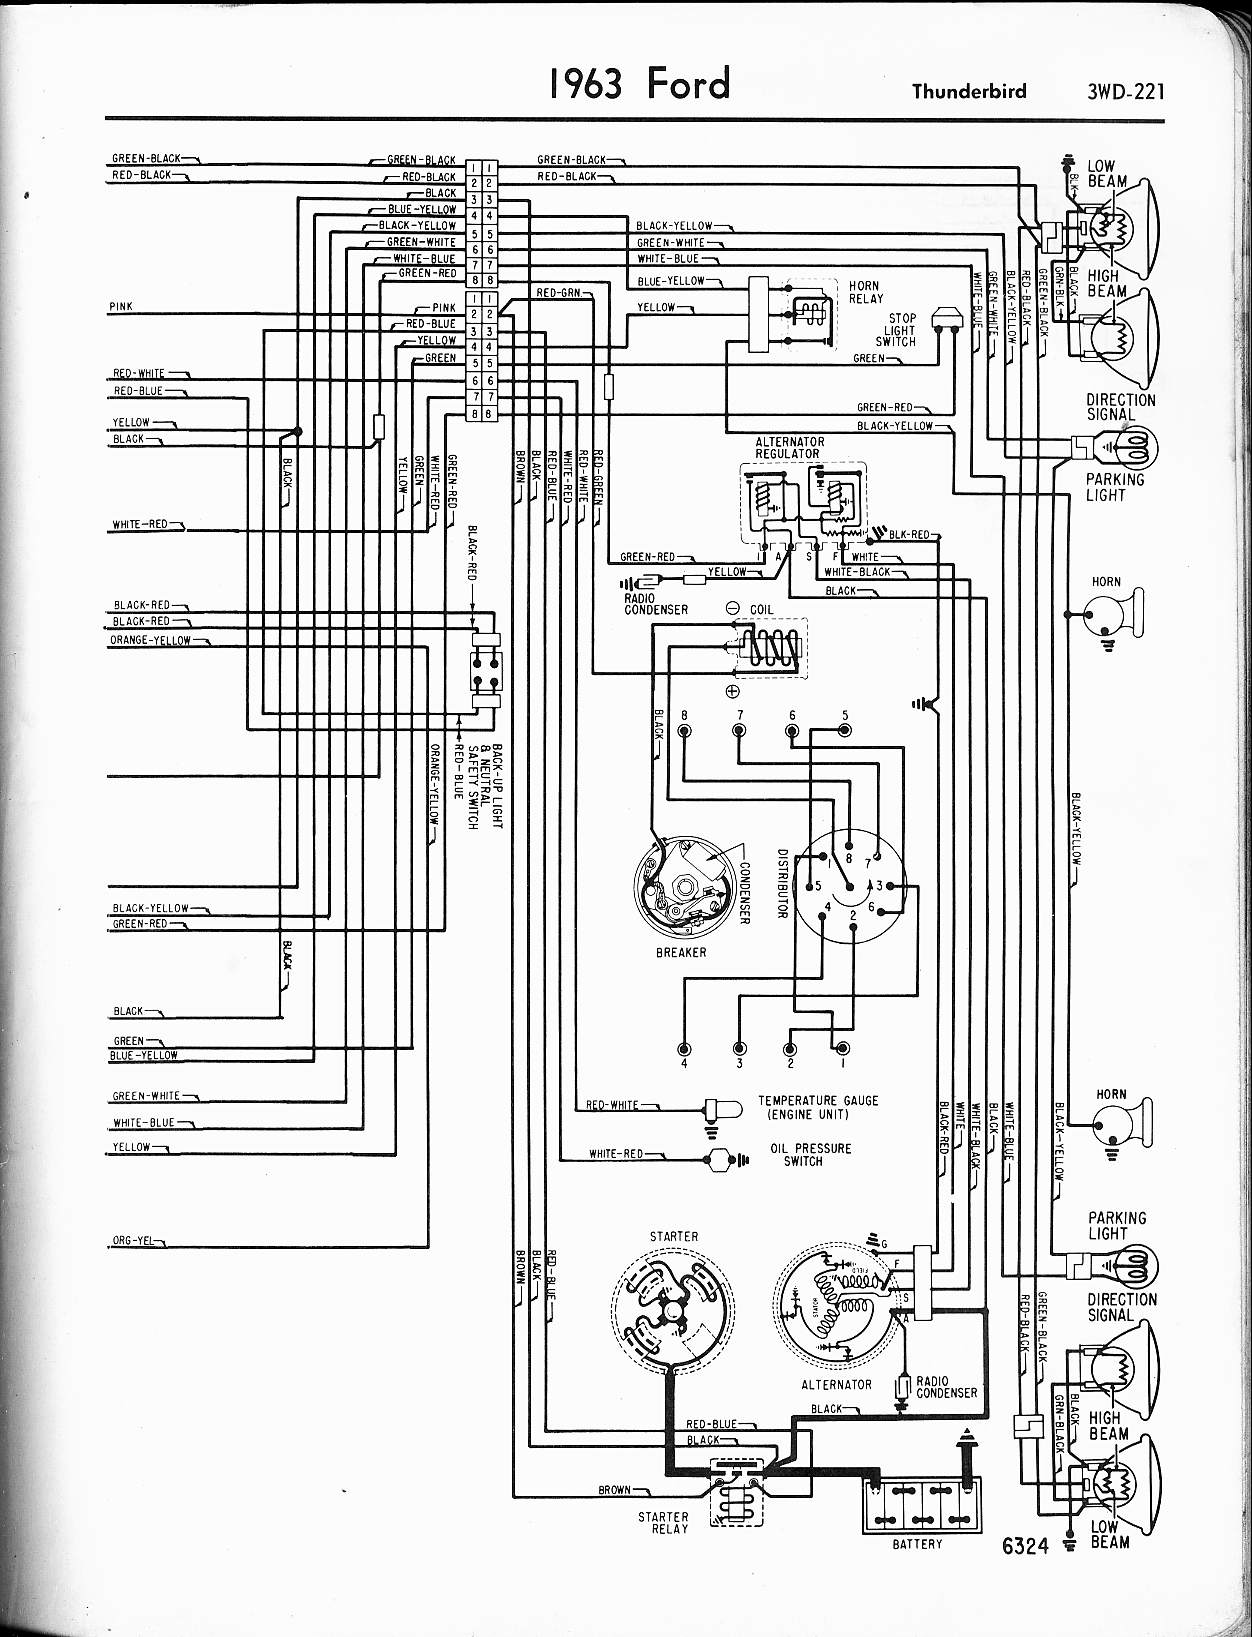 Mwire on 1963 ford f100 wiring diagram